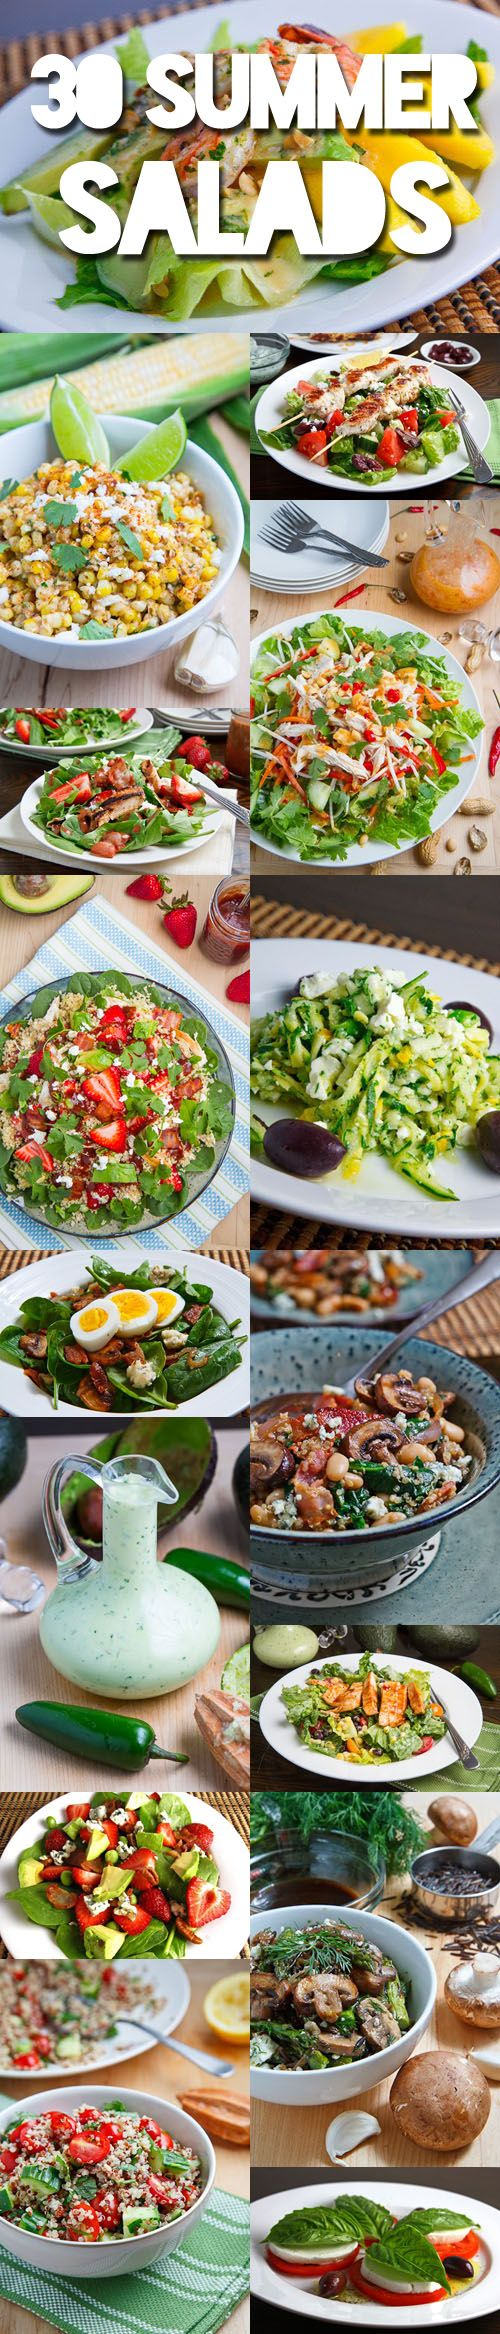 We're in the middle of summer right now and summer is definitely the salad season! Salads are amazingly...